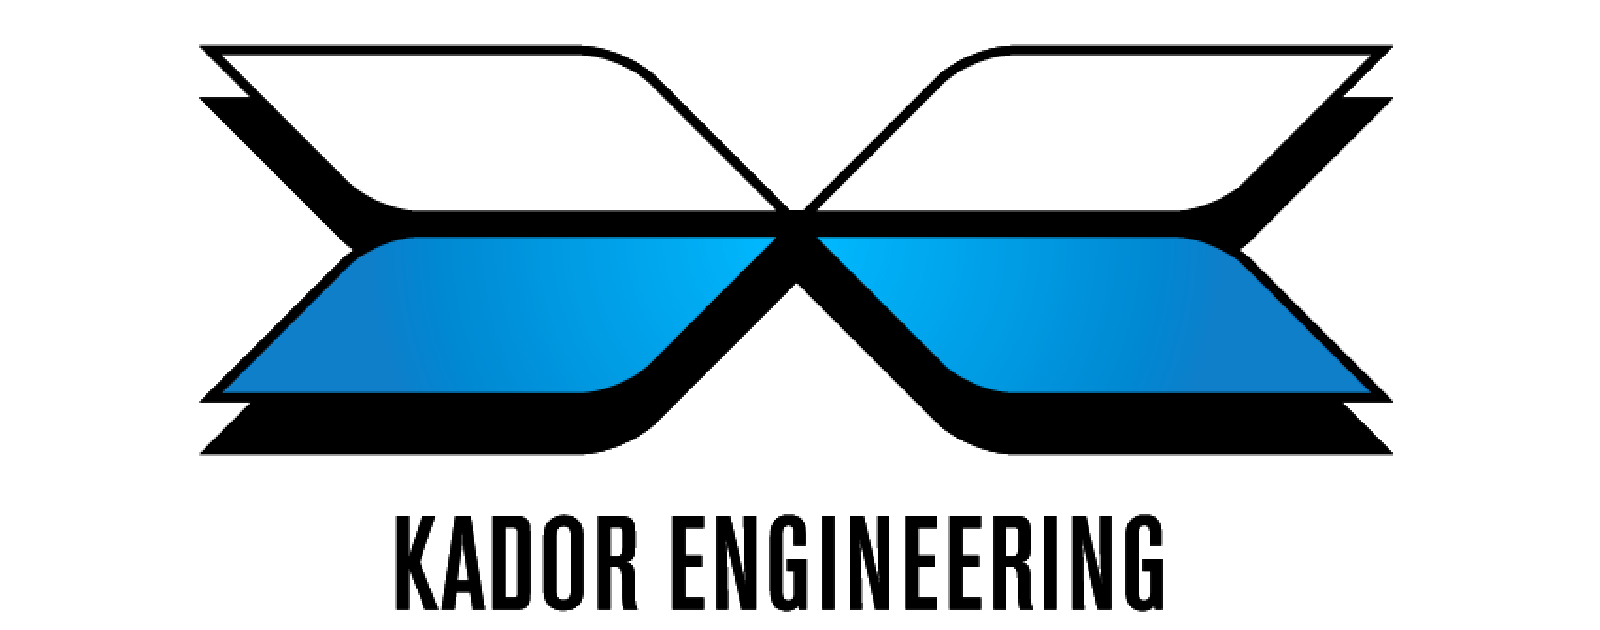 Kador Engineering Logo